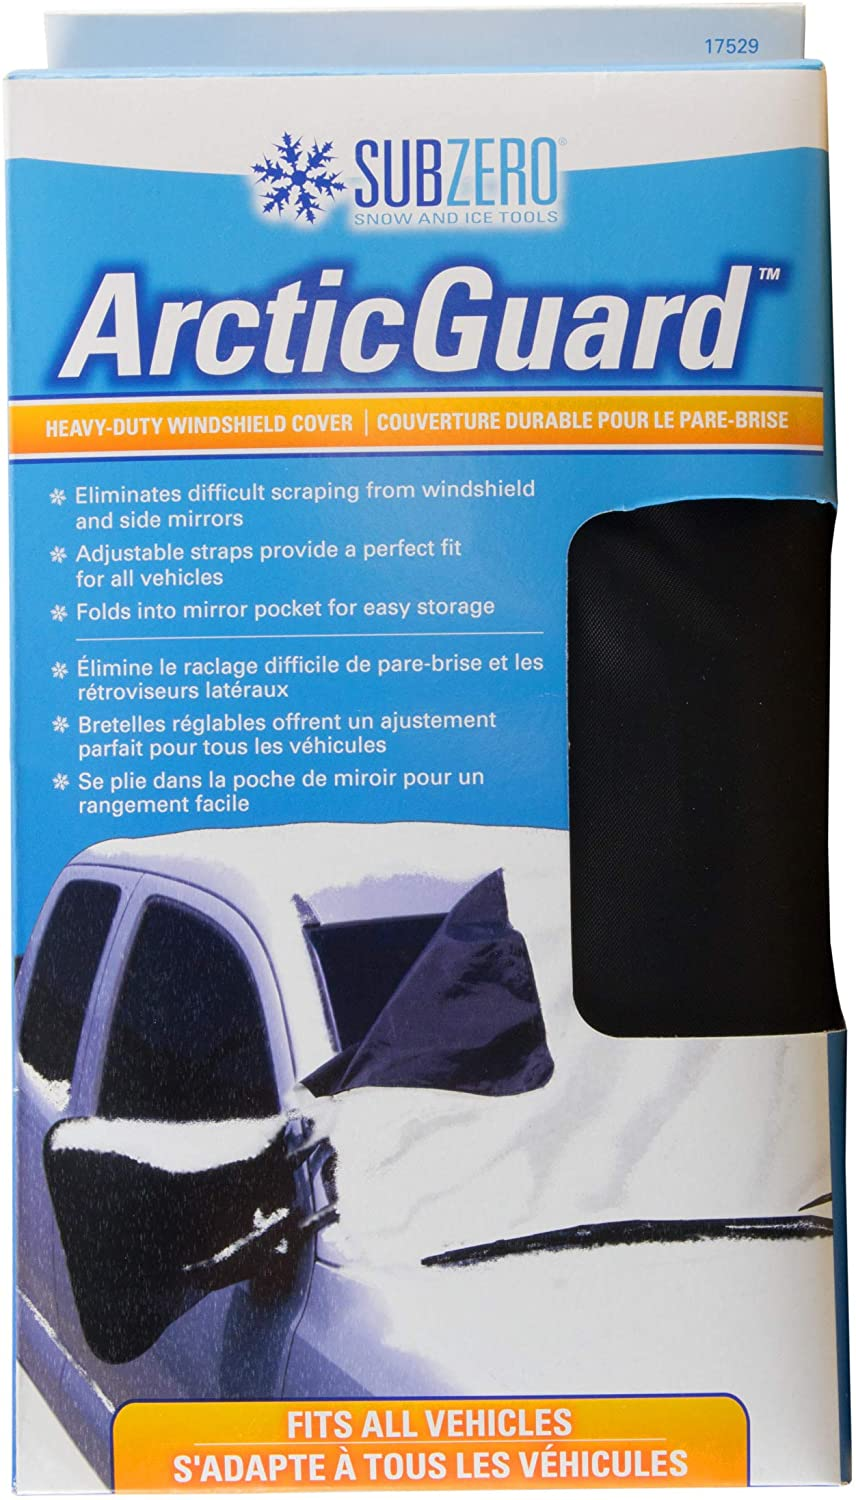 ArcticGuard Snow and Ice Universal Windshield Cover